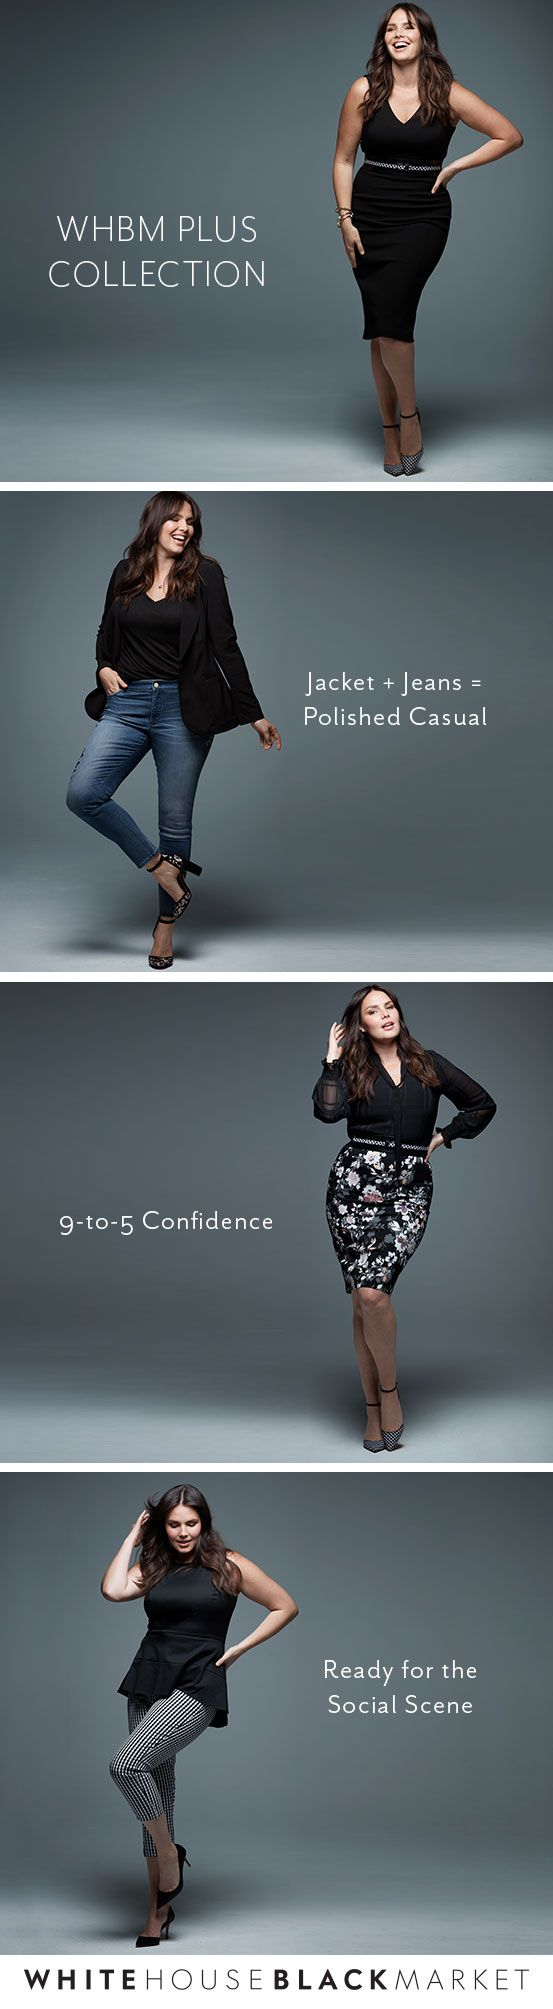 The beauty of the perfect fit is one we stand behind. Great style and fit in just your size? Why, yes! Introducing our WHBM Plus Collection. Because beauty comes in all shapes and sizes, we now have sizes up to 24W. Work, weekend, after-work or social events–you'll find the just-right look and fit with us.   White House Black Market